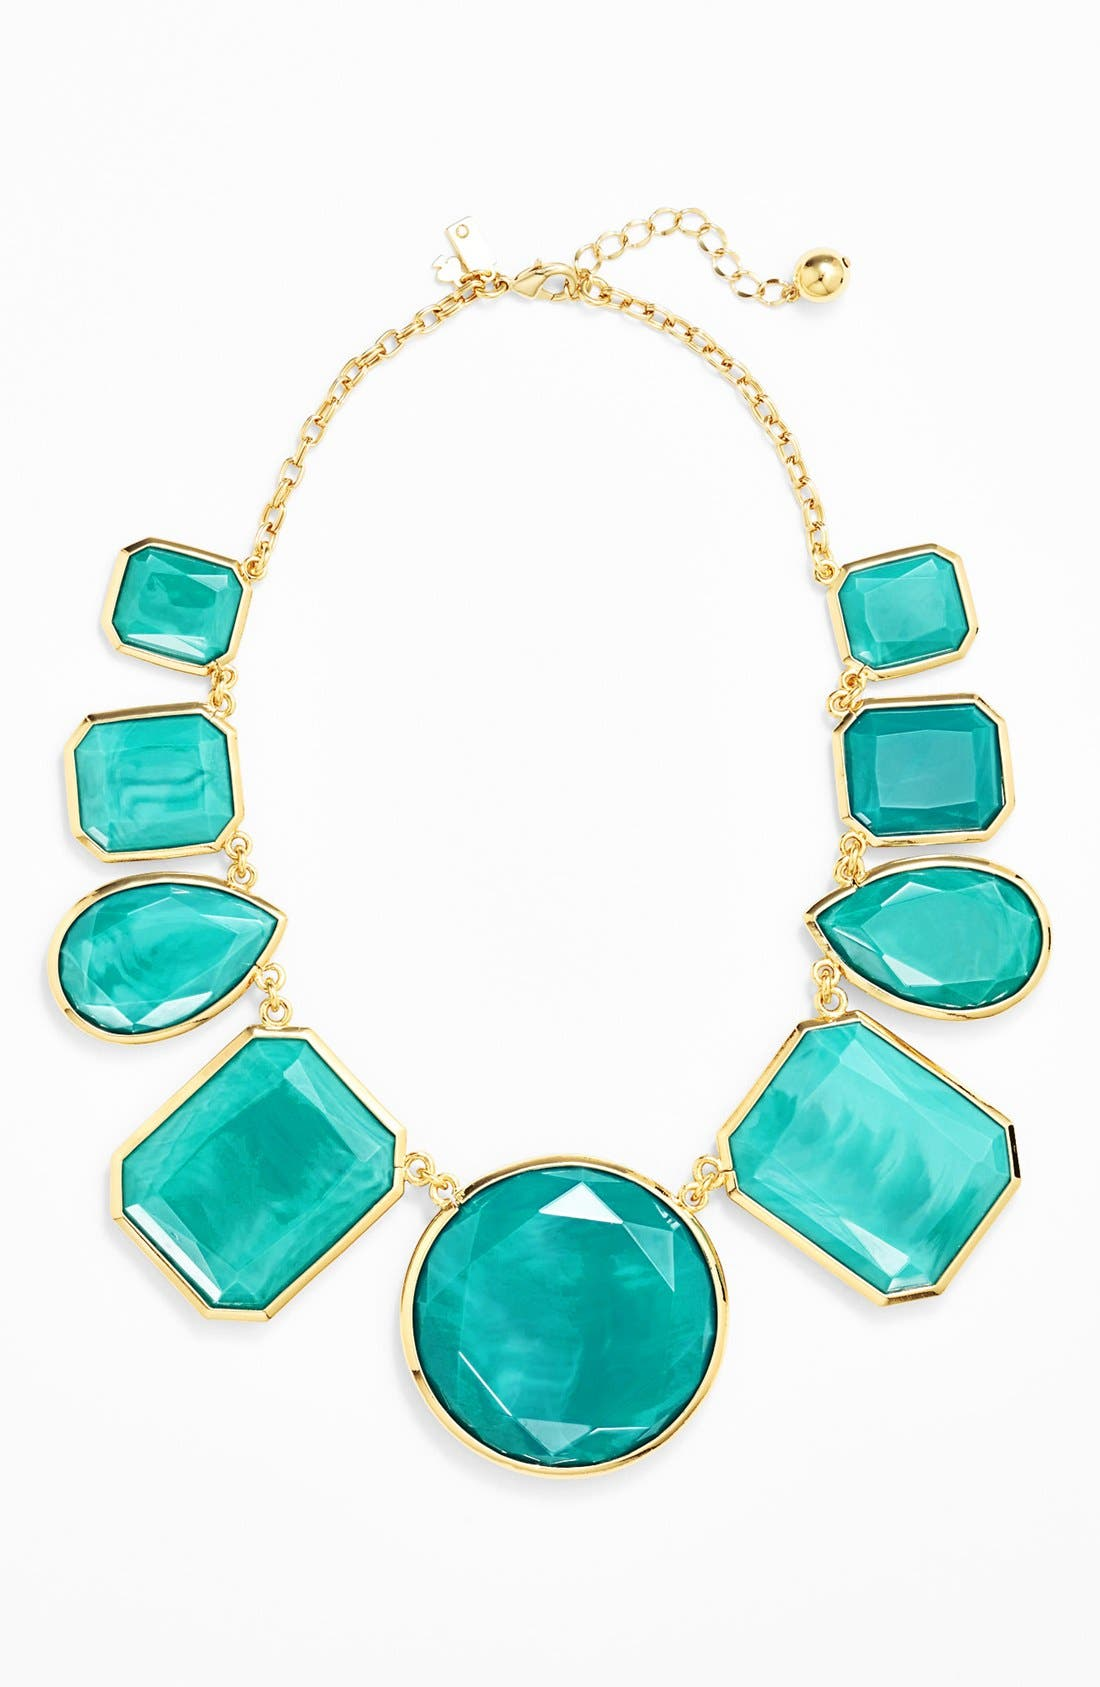 Alternate Image 1 Selected - kate spade new york 'swirl around' graduated stone necklace